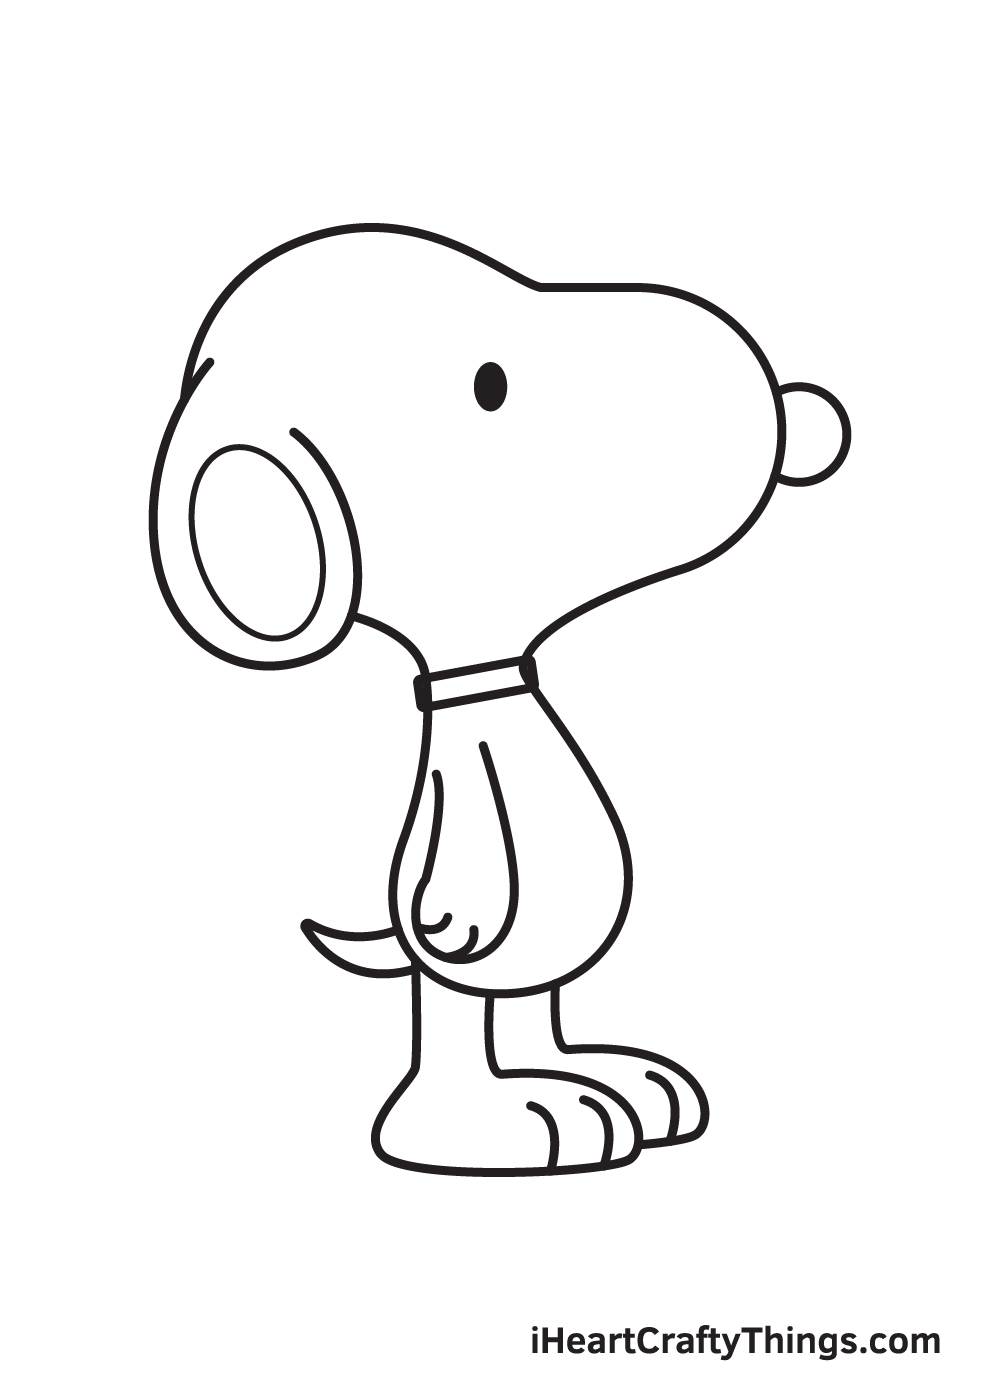 snoopy drawing step 9